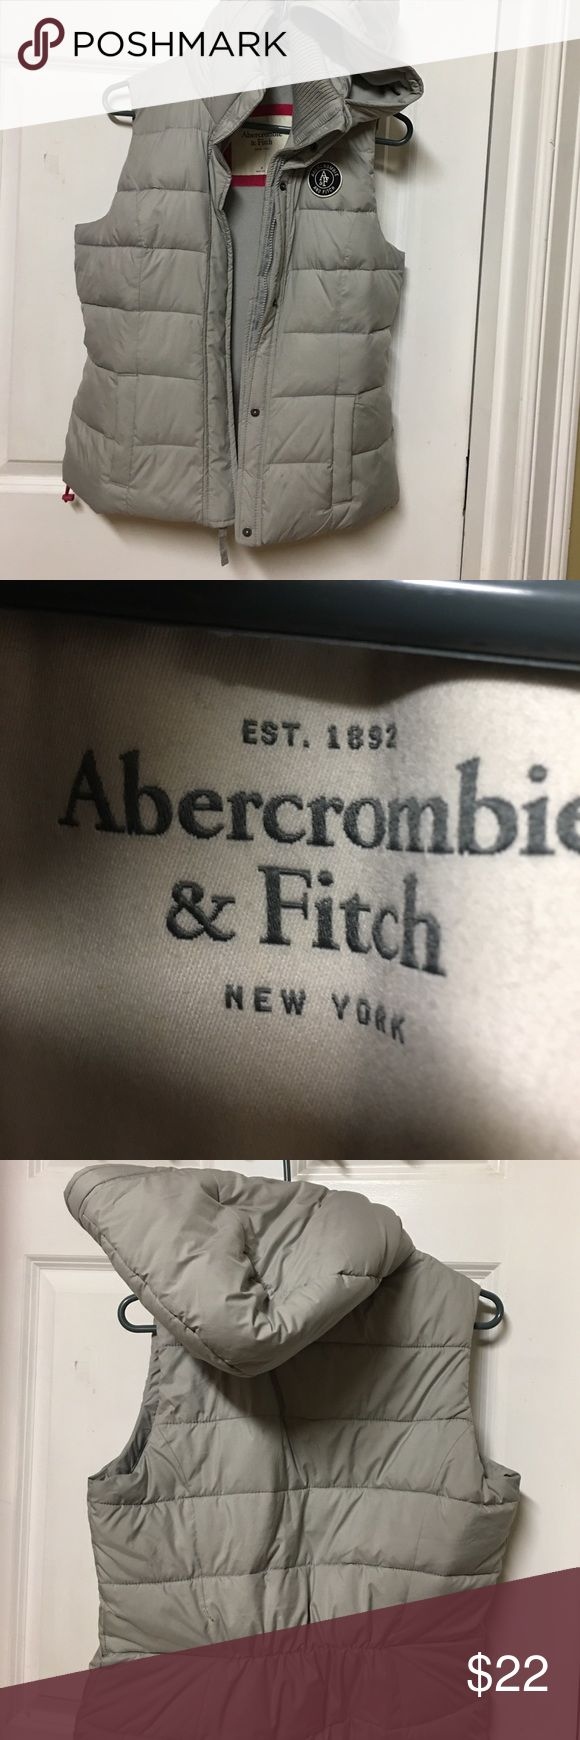 Abercrombie fitch hoodie jacket 100% polyester good condition Abercrombie & Fitch Jackets & Coats